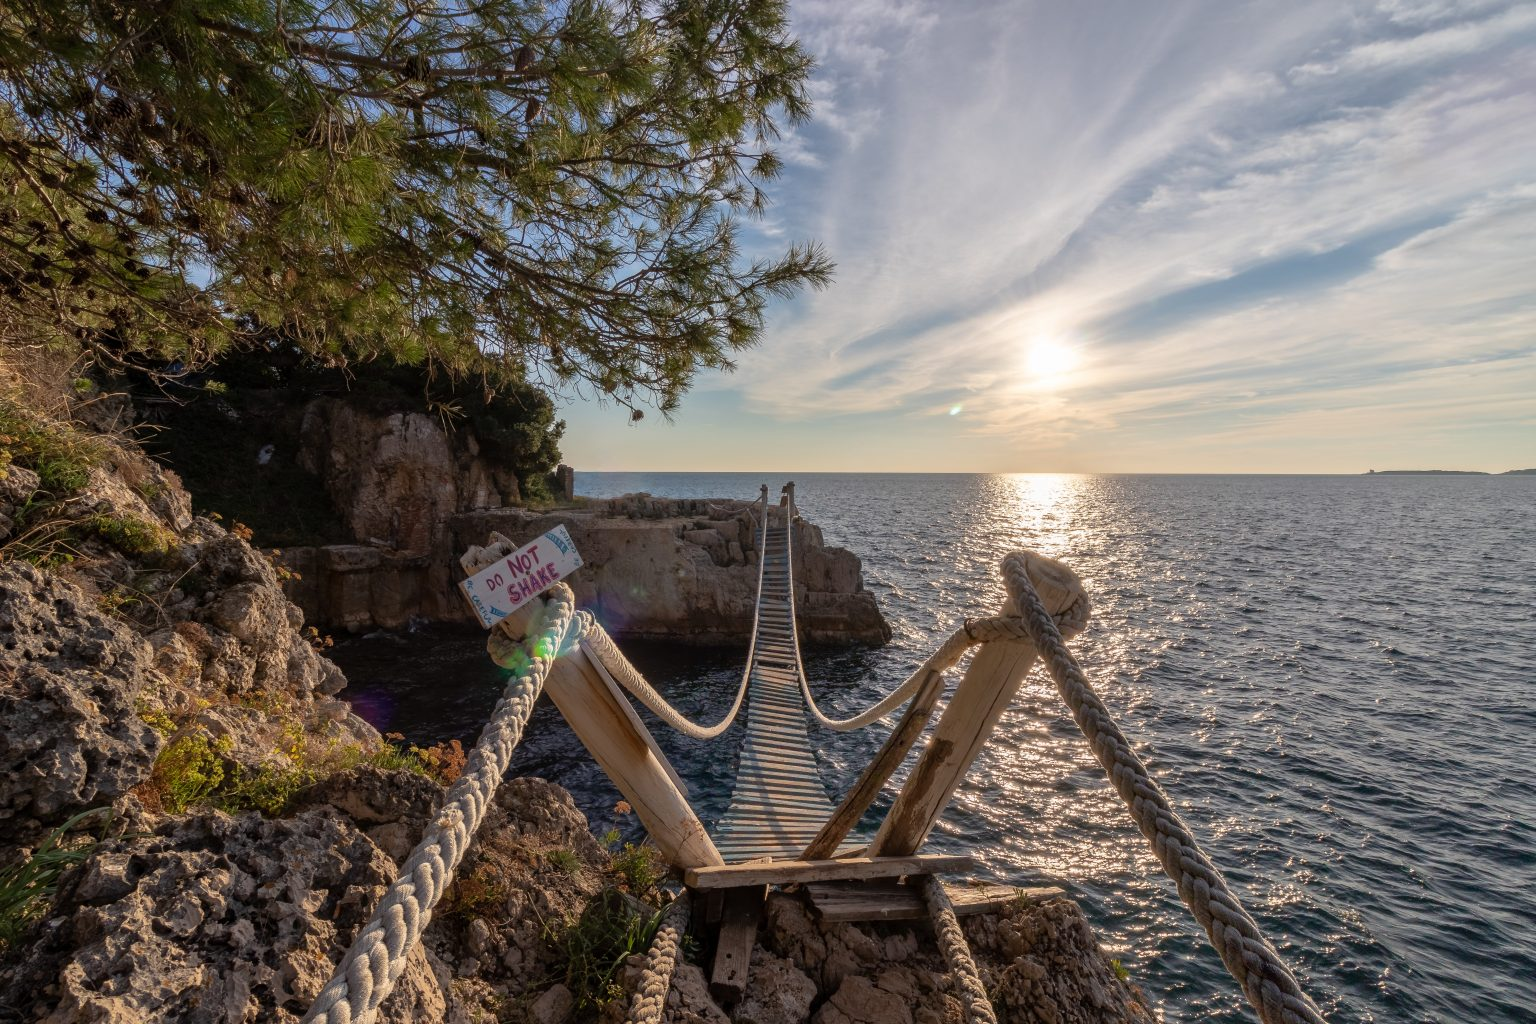 Small wooden bridge connecting two islands in Pula Croatia